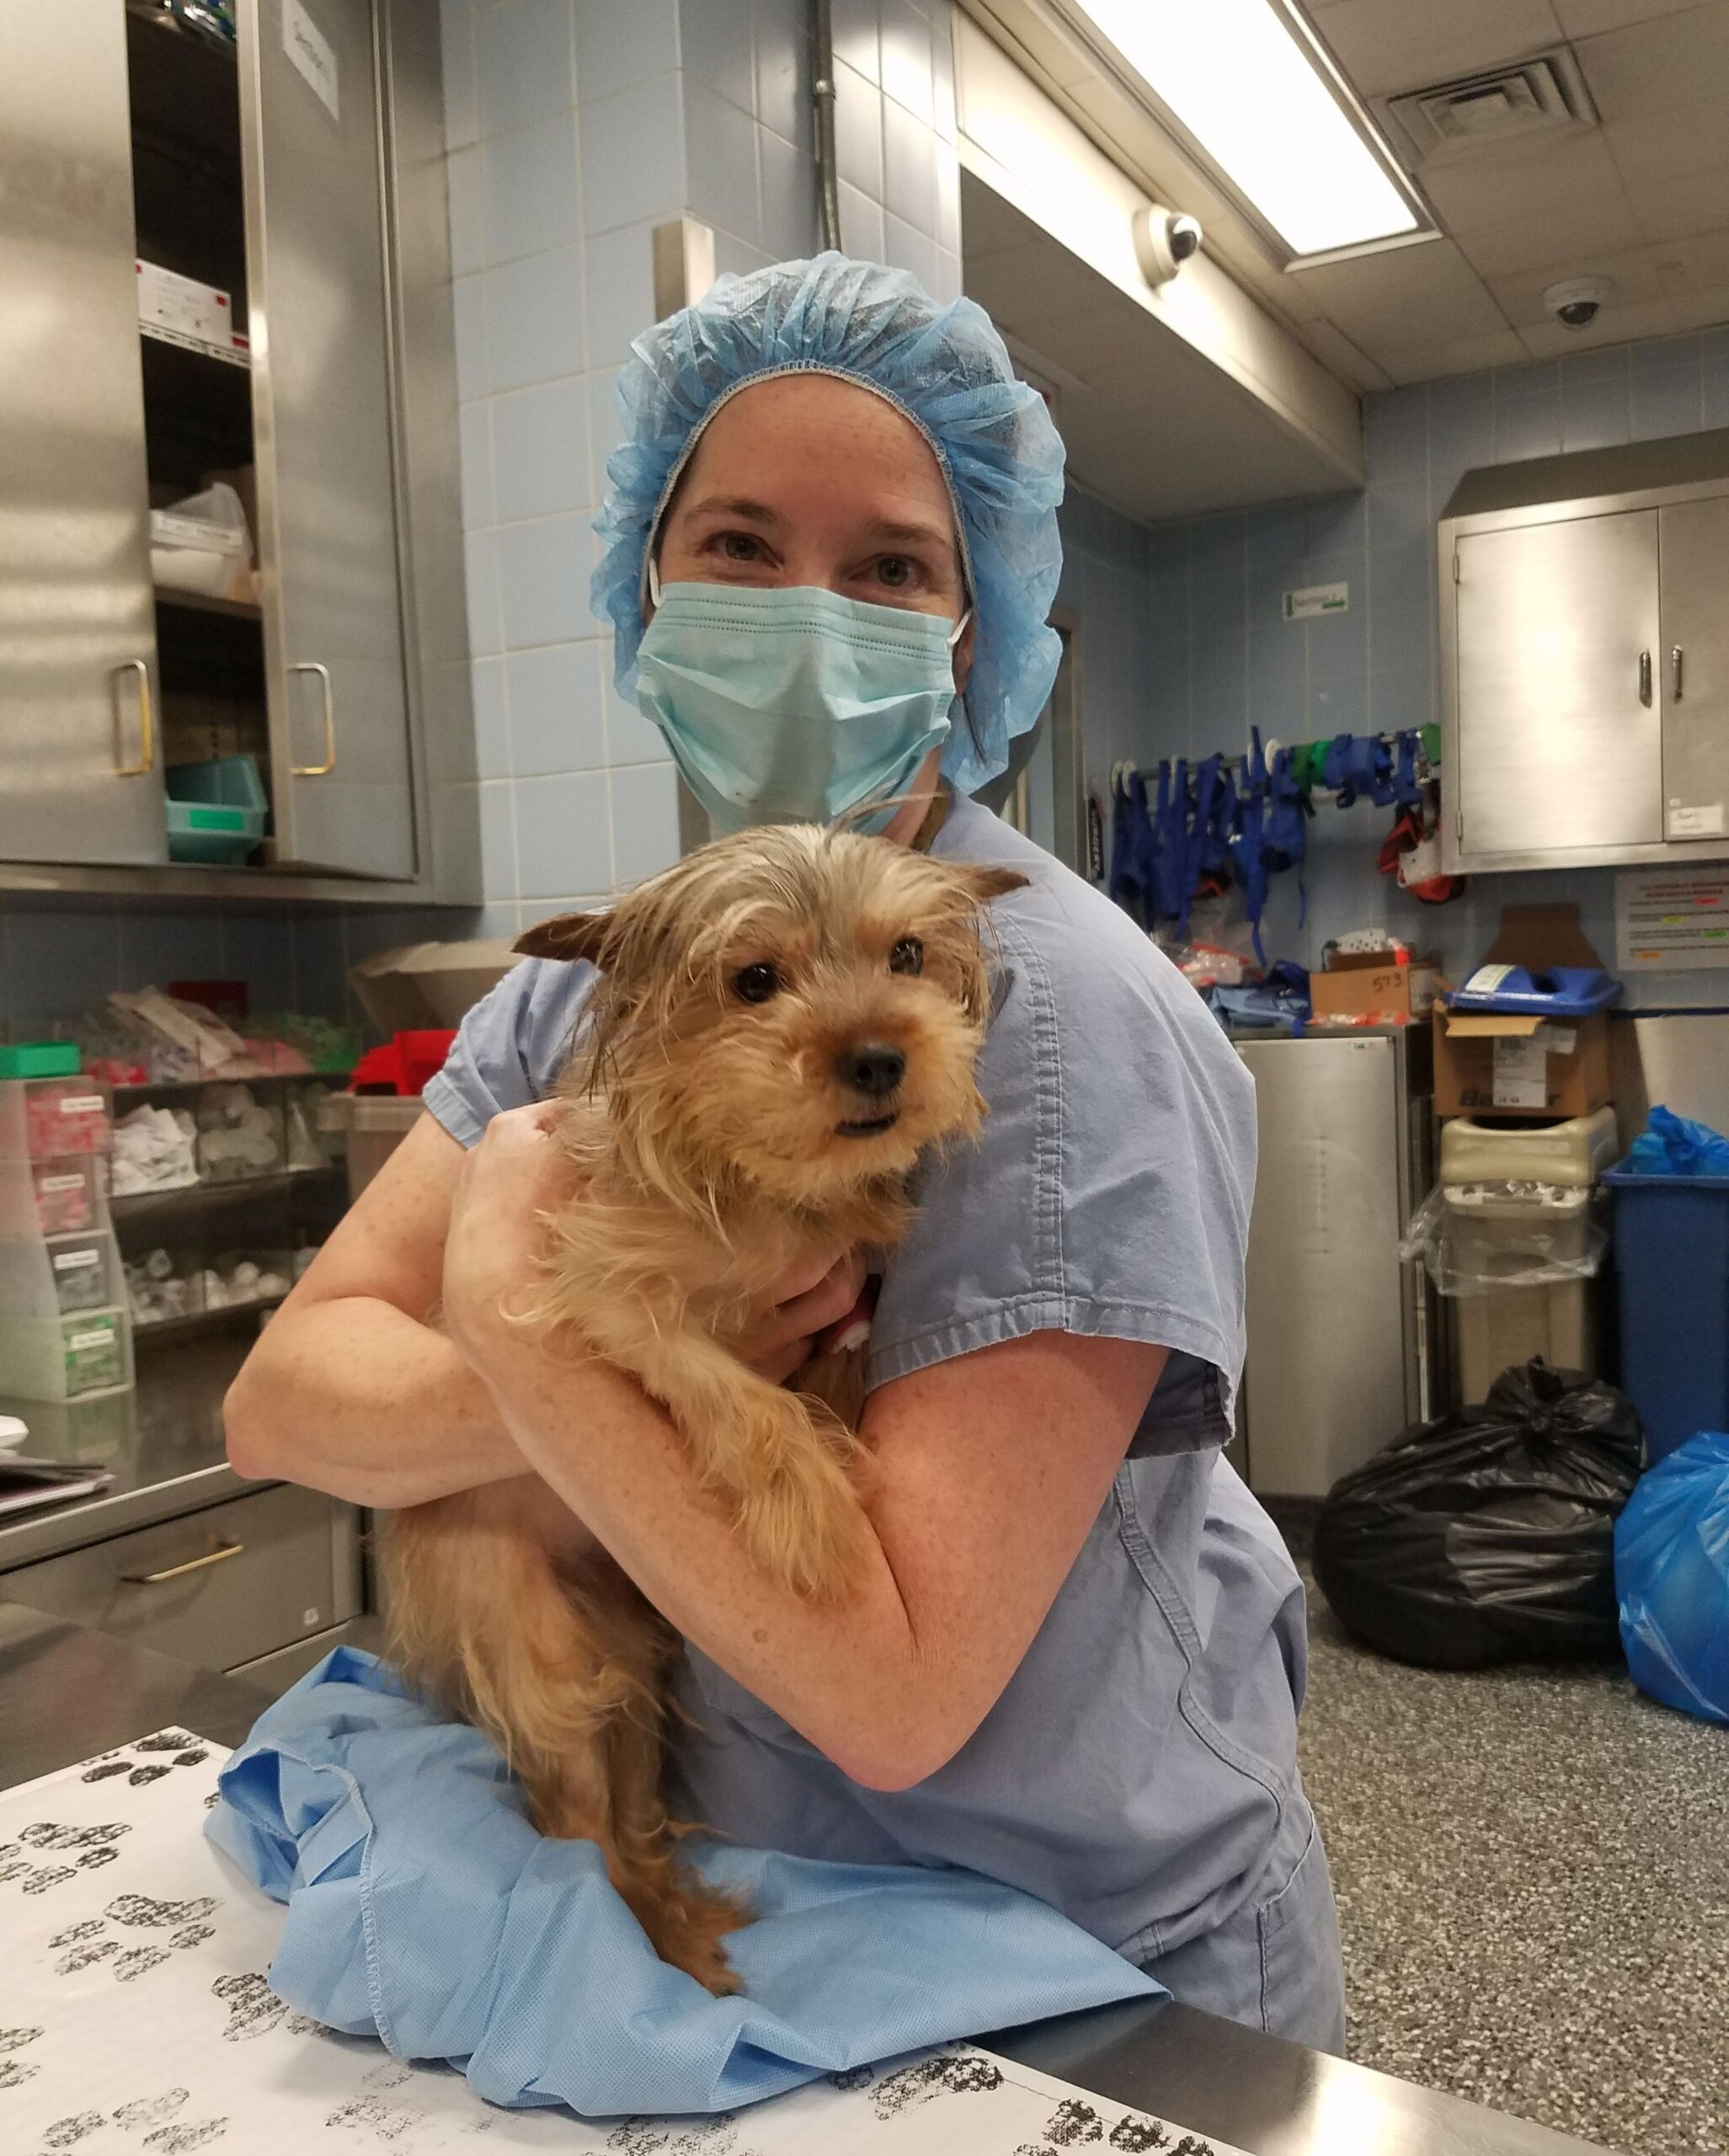 A veterinary professional hugging a dog